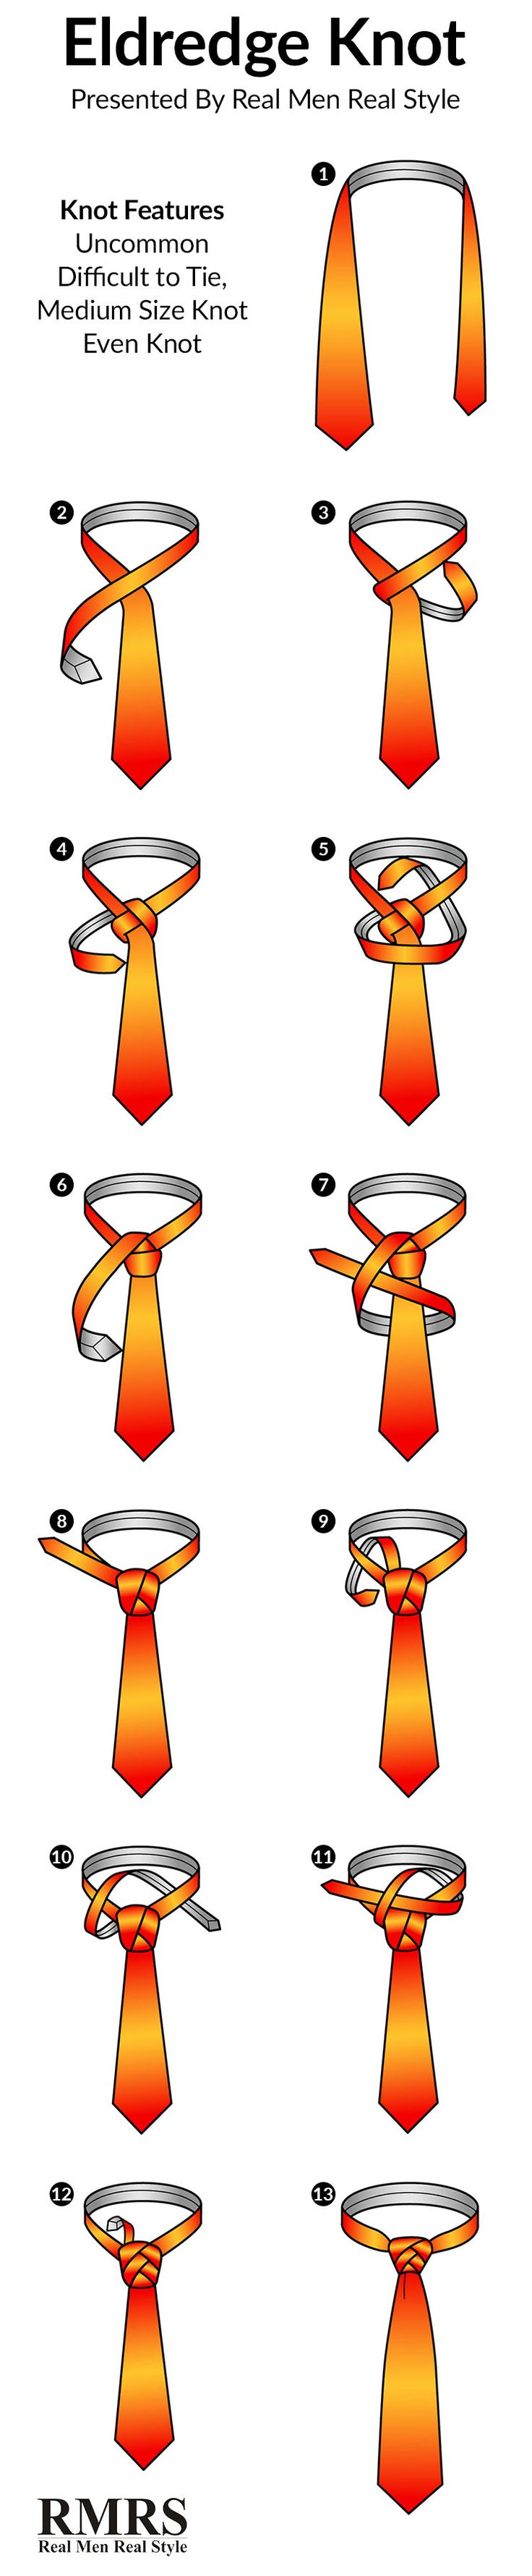 How To Tie A Tie | The Eldredge Knot Infographic